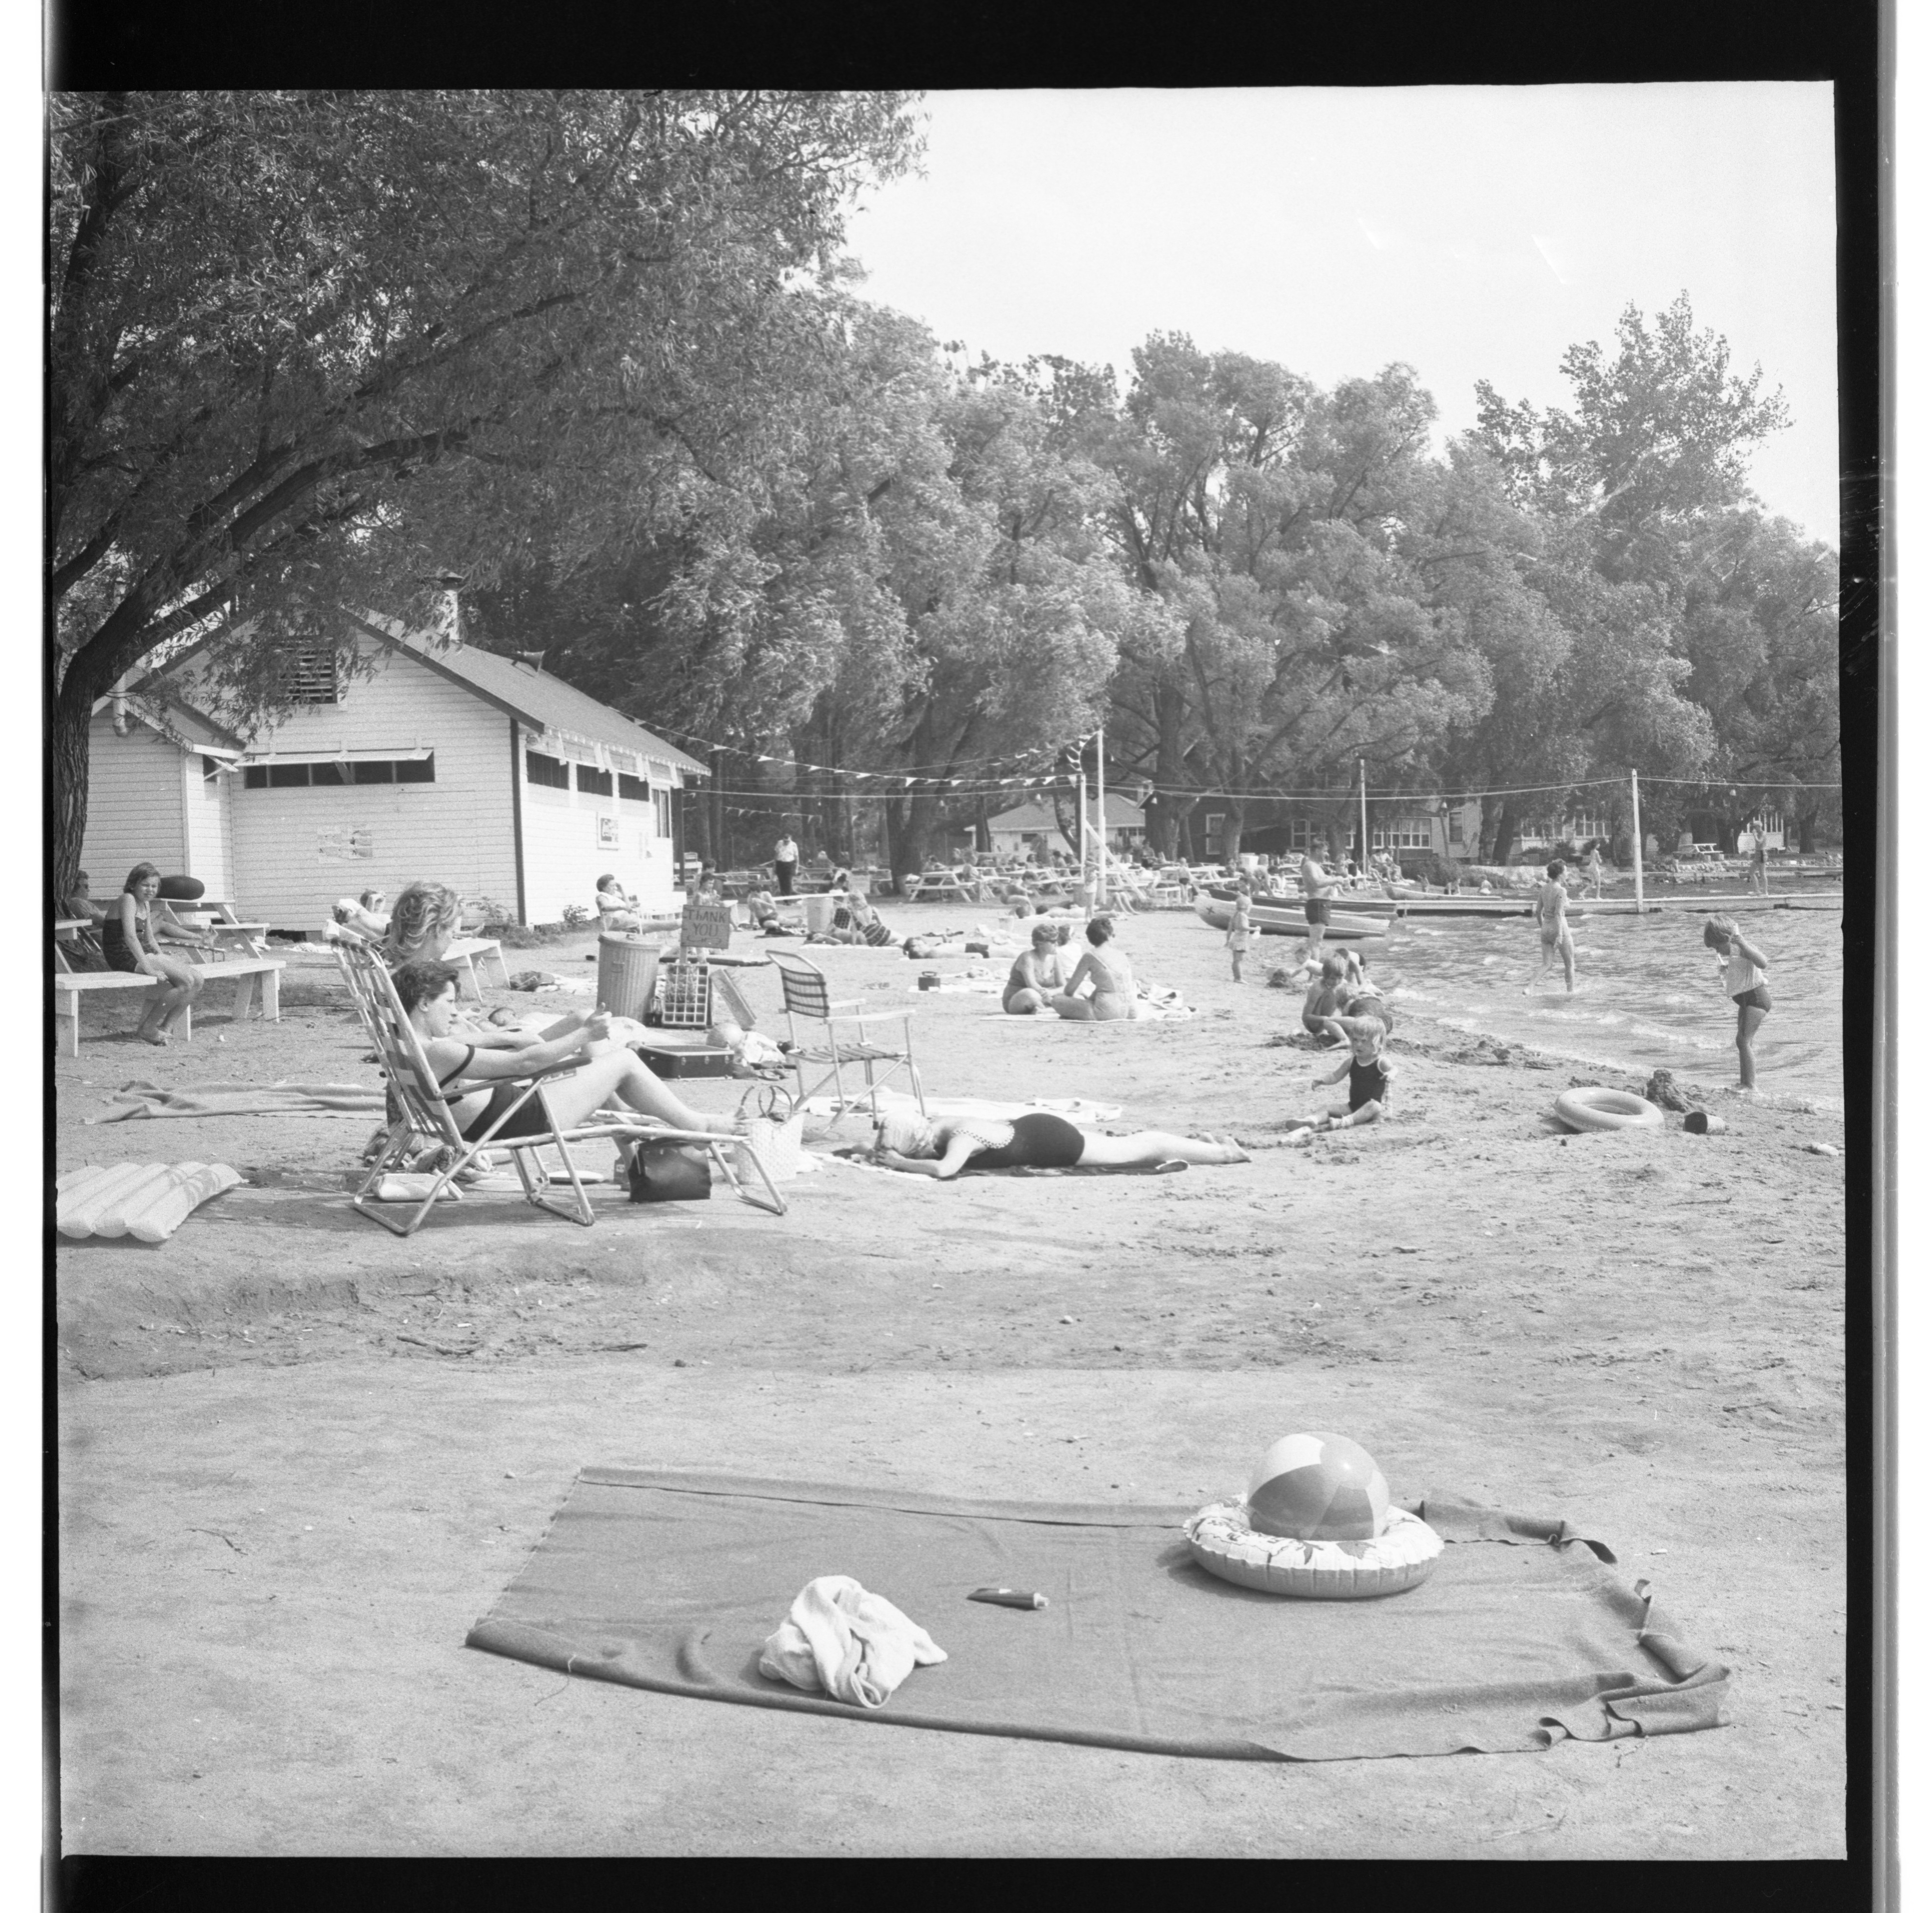 Groome's Beach Picnic Area - Whitmore Lake, July 1963 image